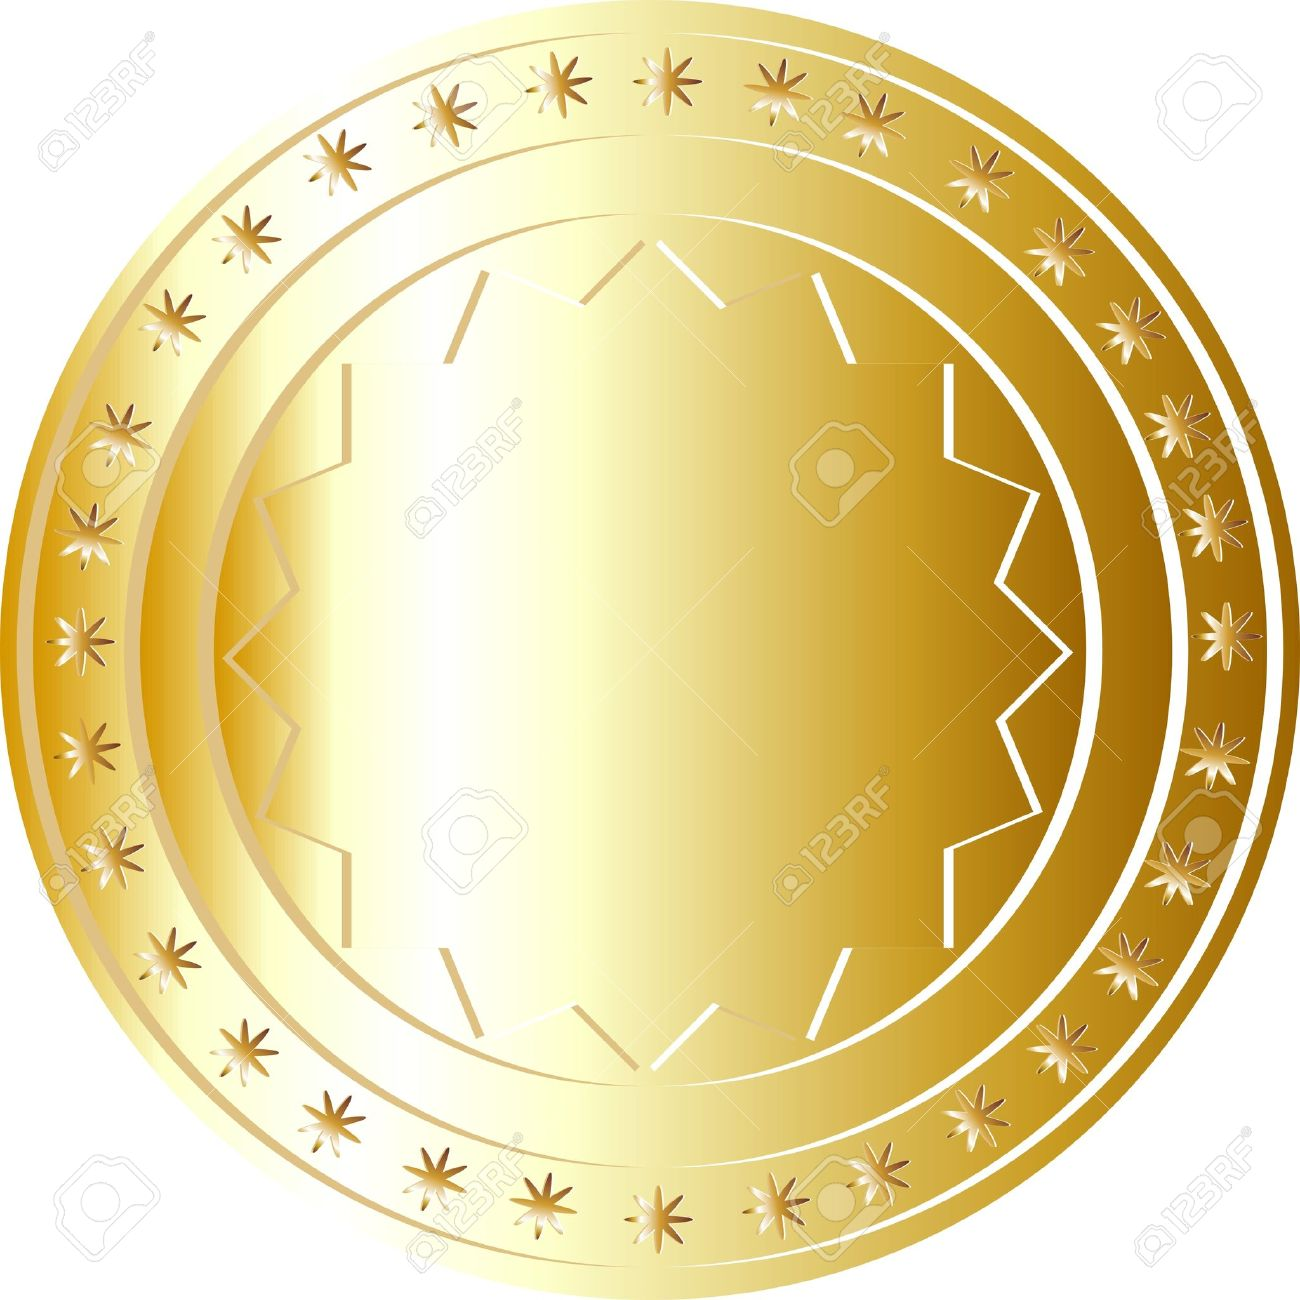 gold coin template stock photo picture and royalty free image